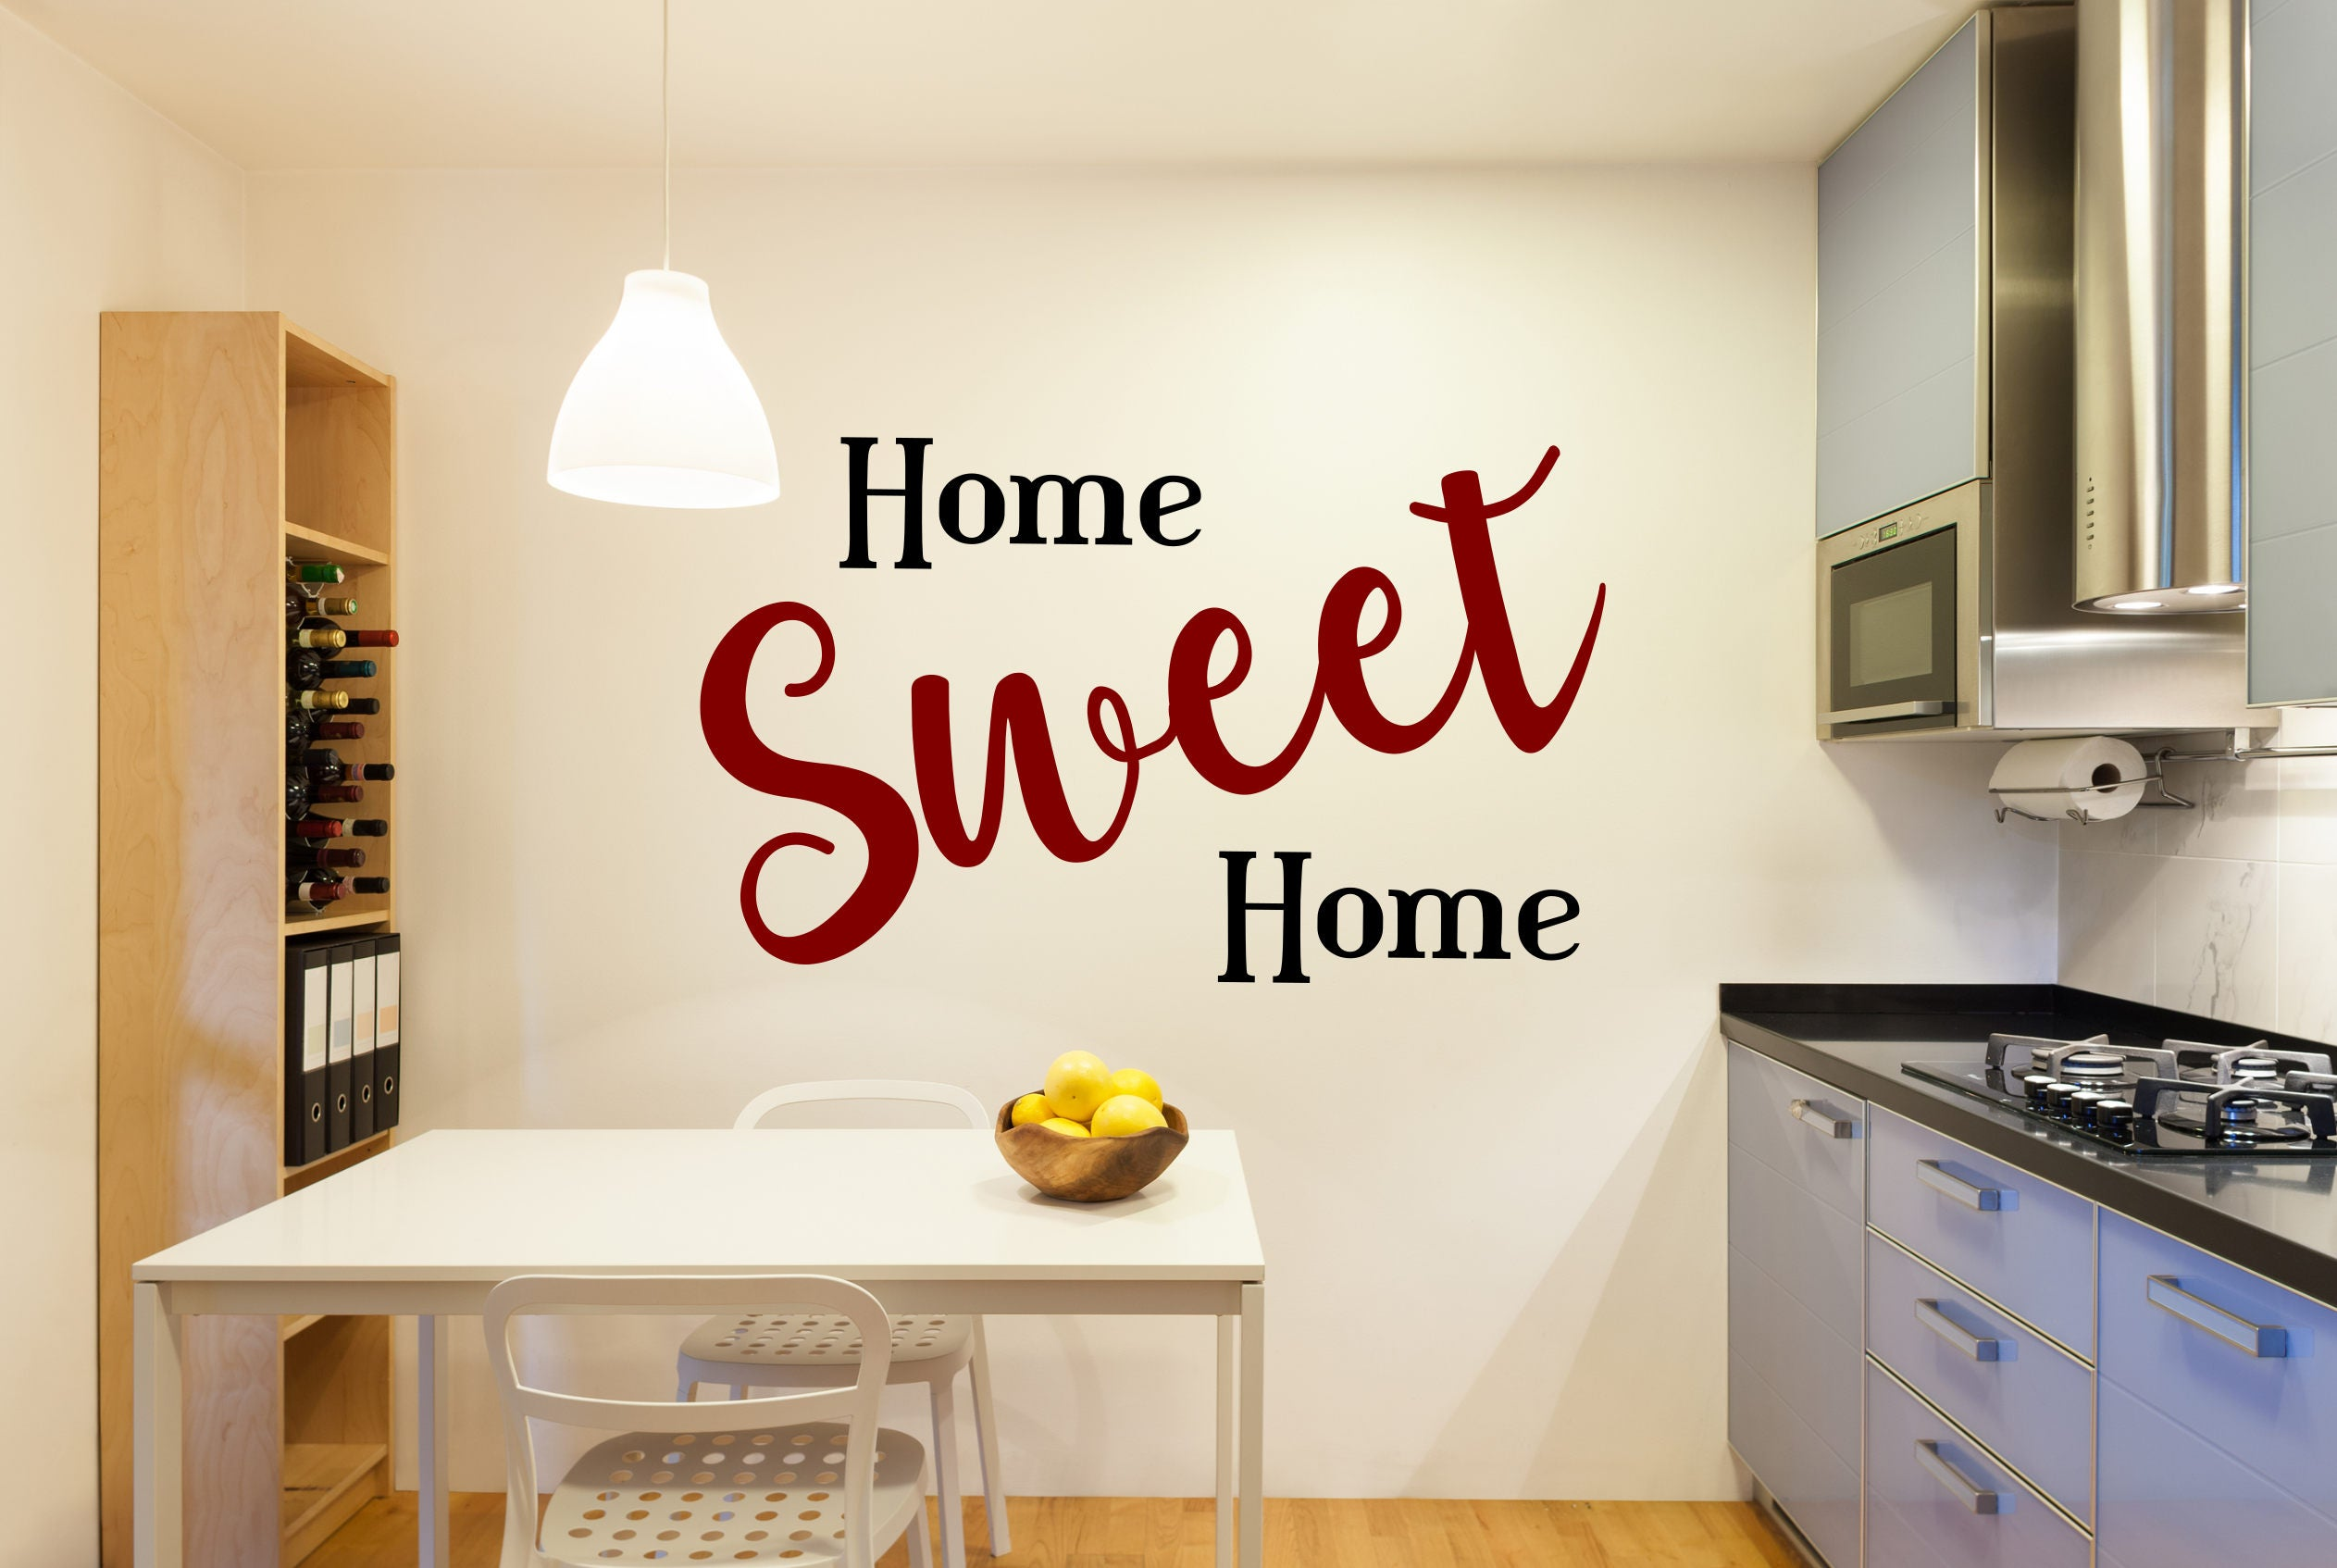 Home sweet home decal, home sweet apartment, home sweet home sign ...